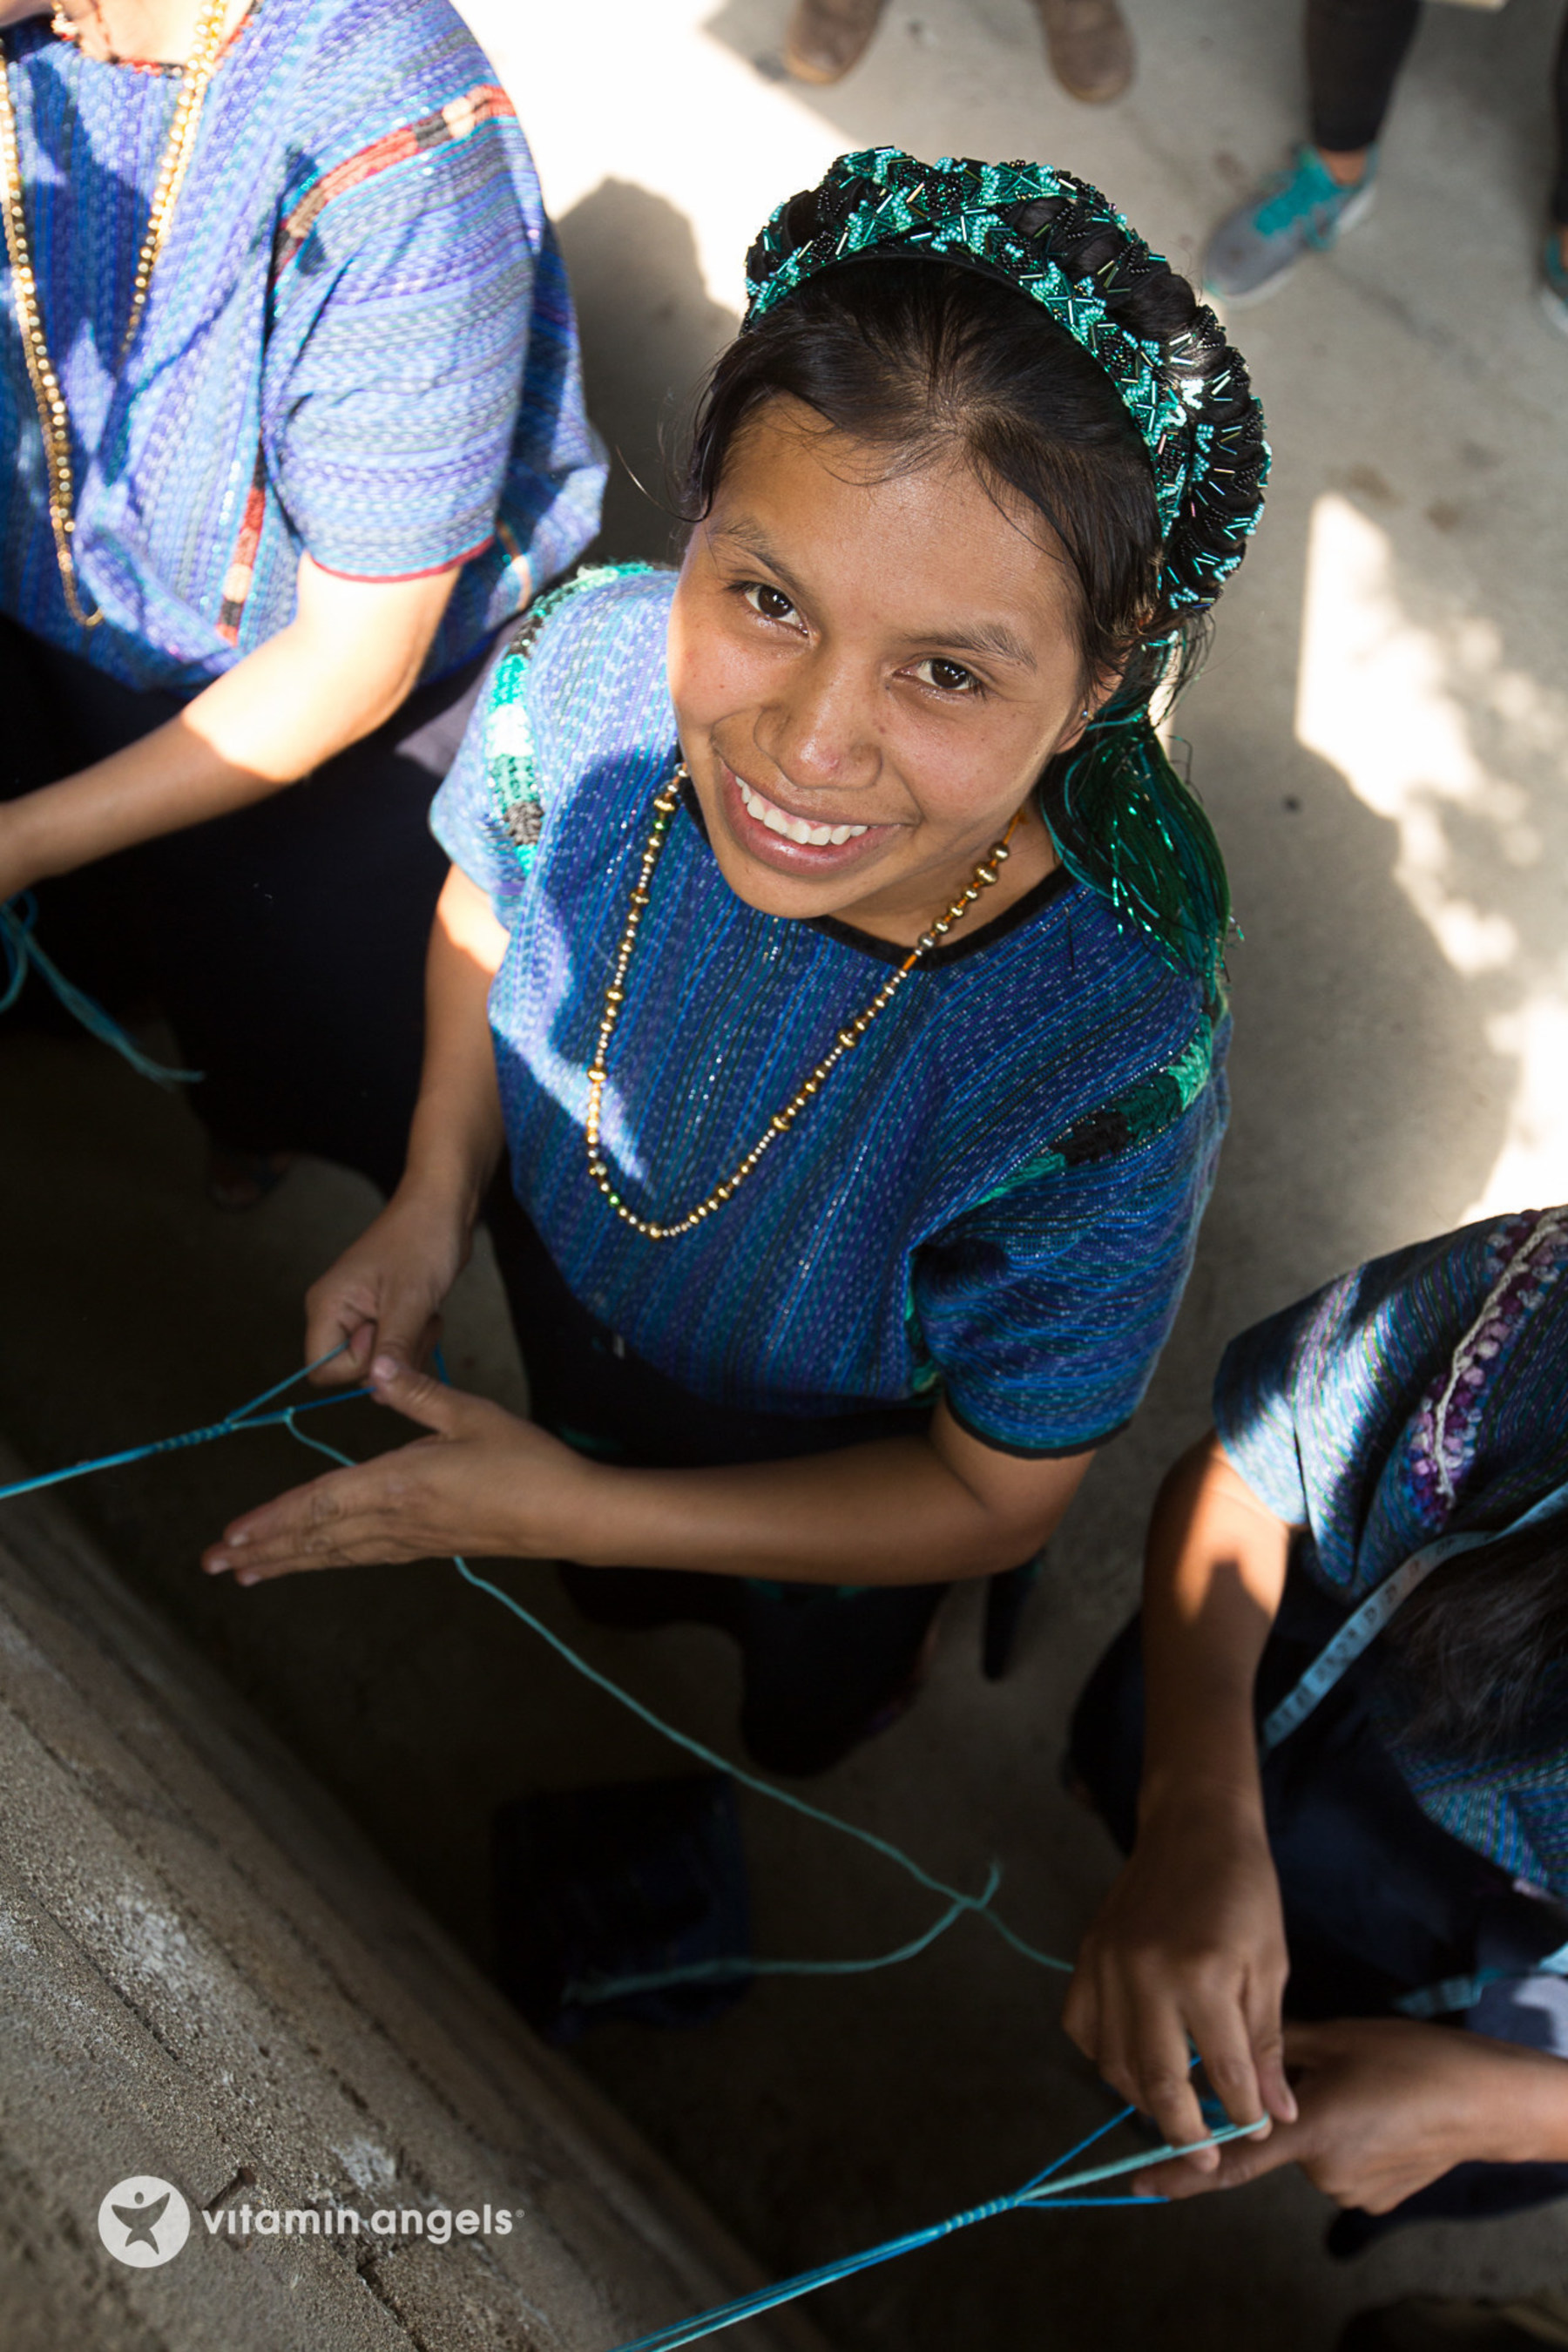 The Vitamin Shoppe is teaming up with Mayan Families, a Guatemalan organization, to offer handmade friendship bracelets. Mayan Families enlisted the help of 100 women, including many who have benefited from Vitamin Angels' vitamins, to make bracelets for the campaign.